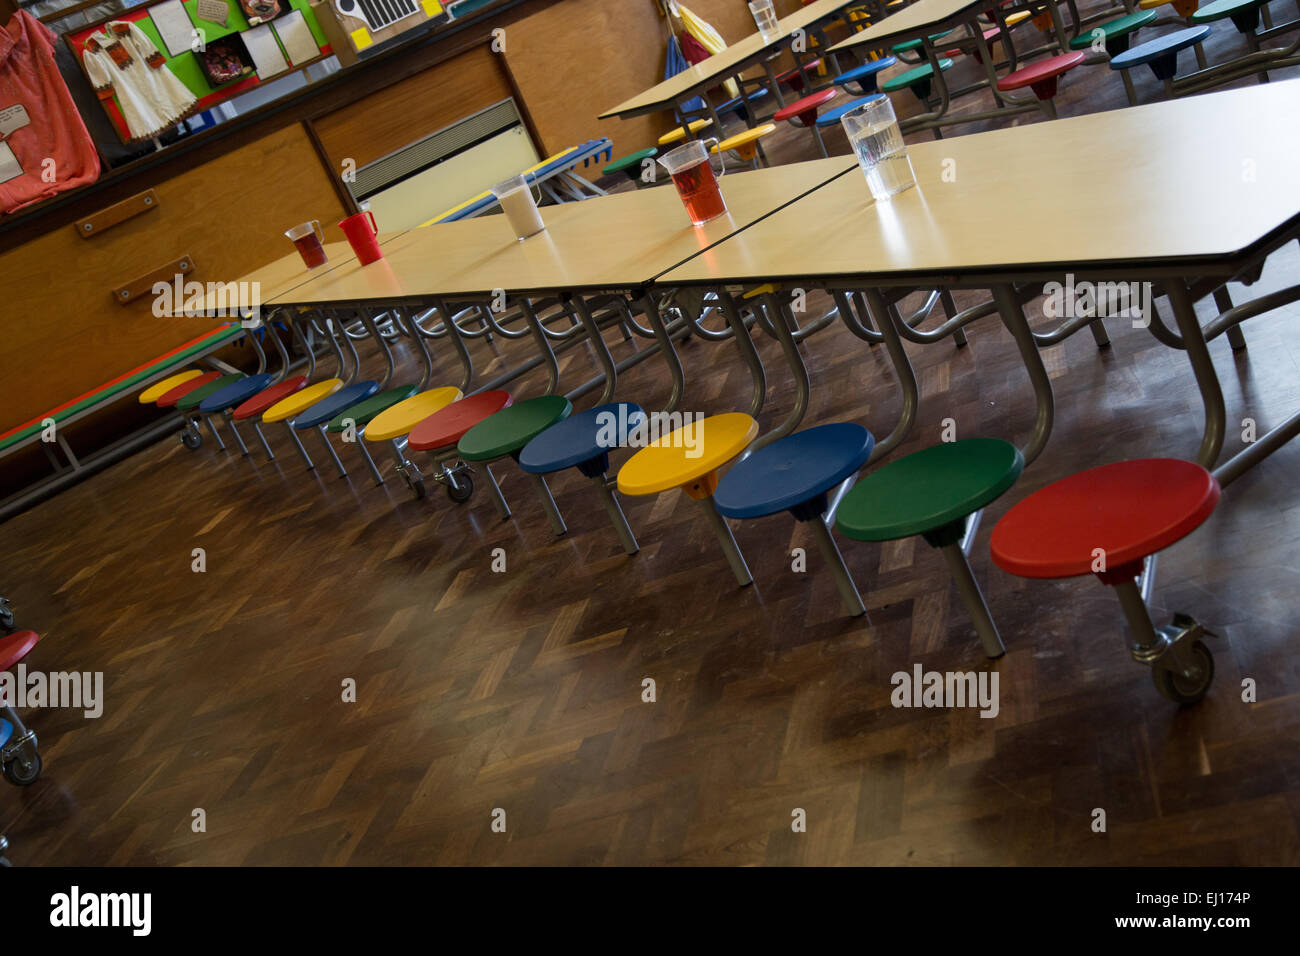 Empty UK school dining hall ready for school lunch - Stock Image